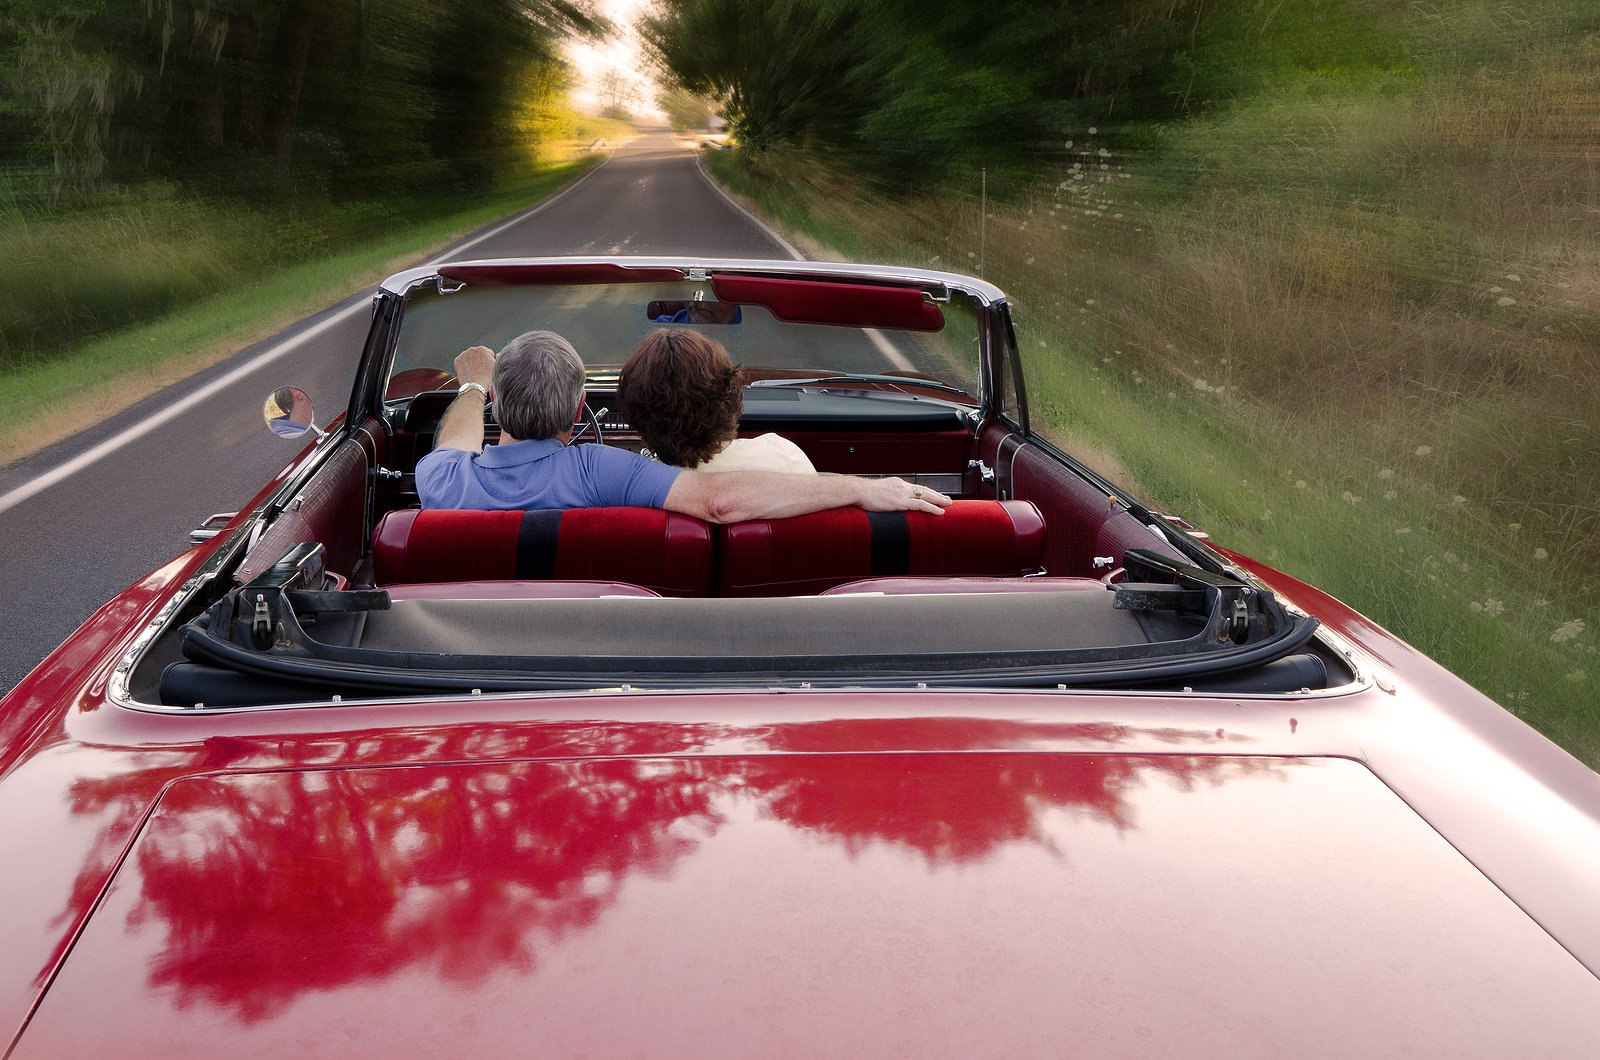 A couple rides in a convertible on a summer evening.